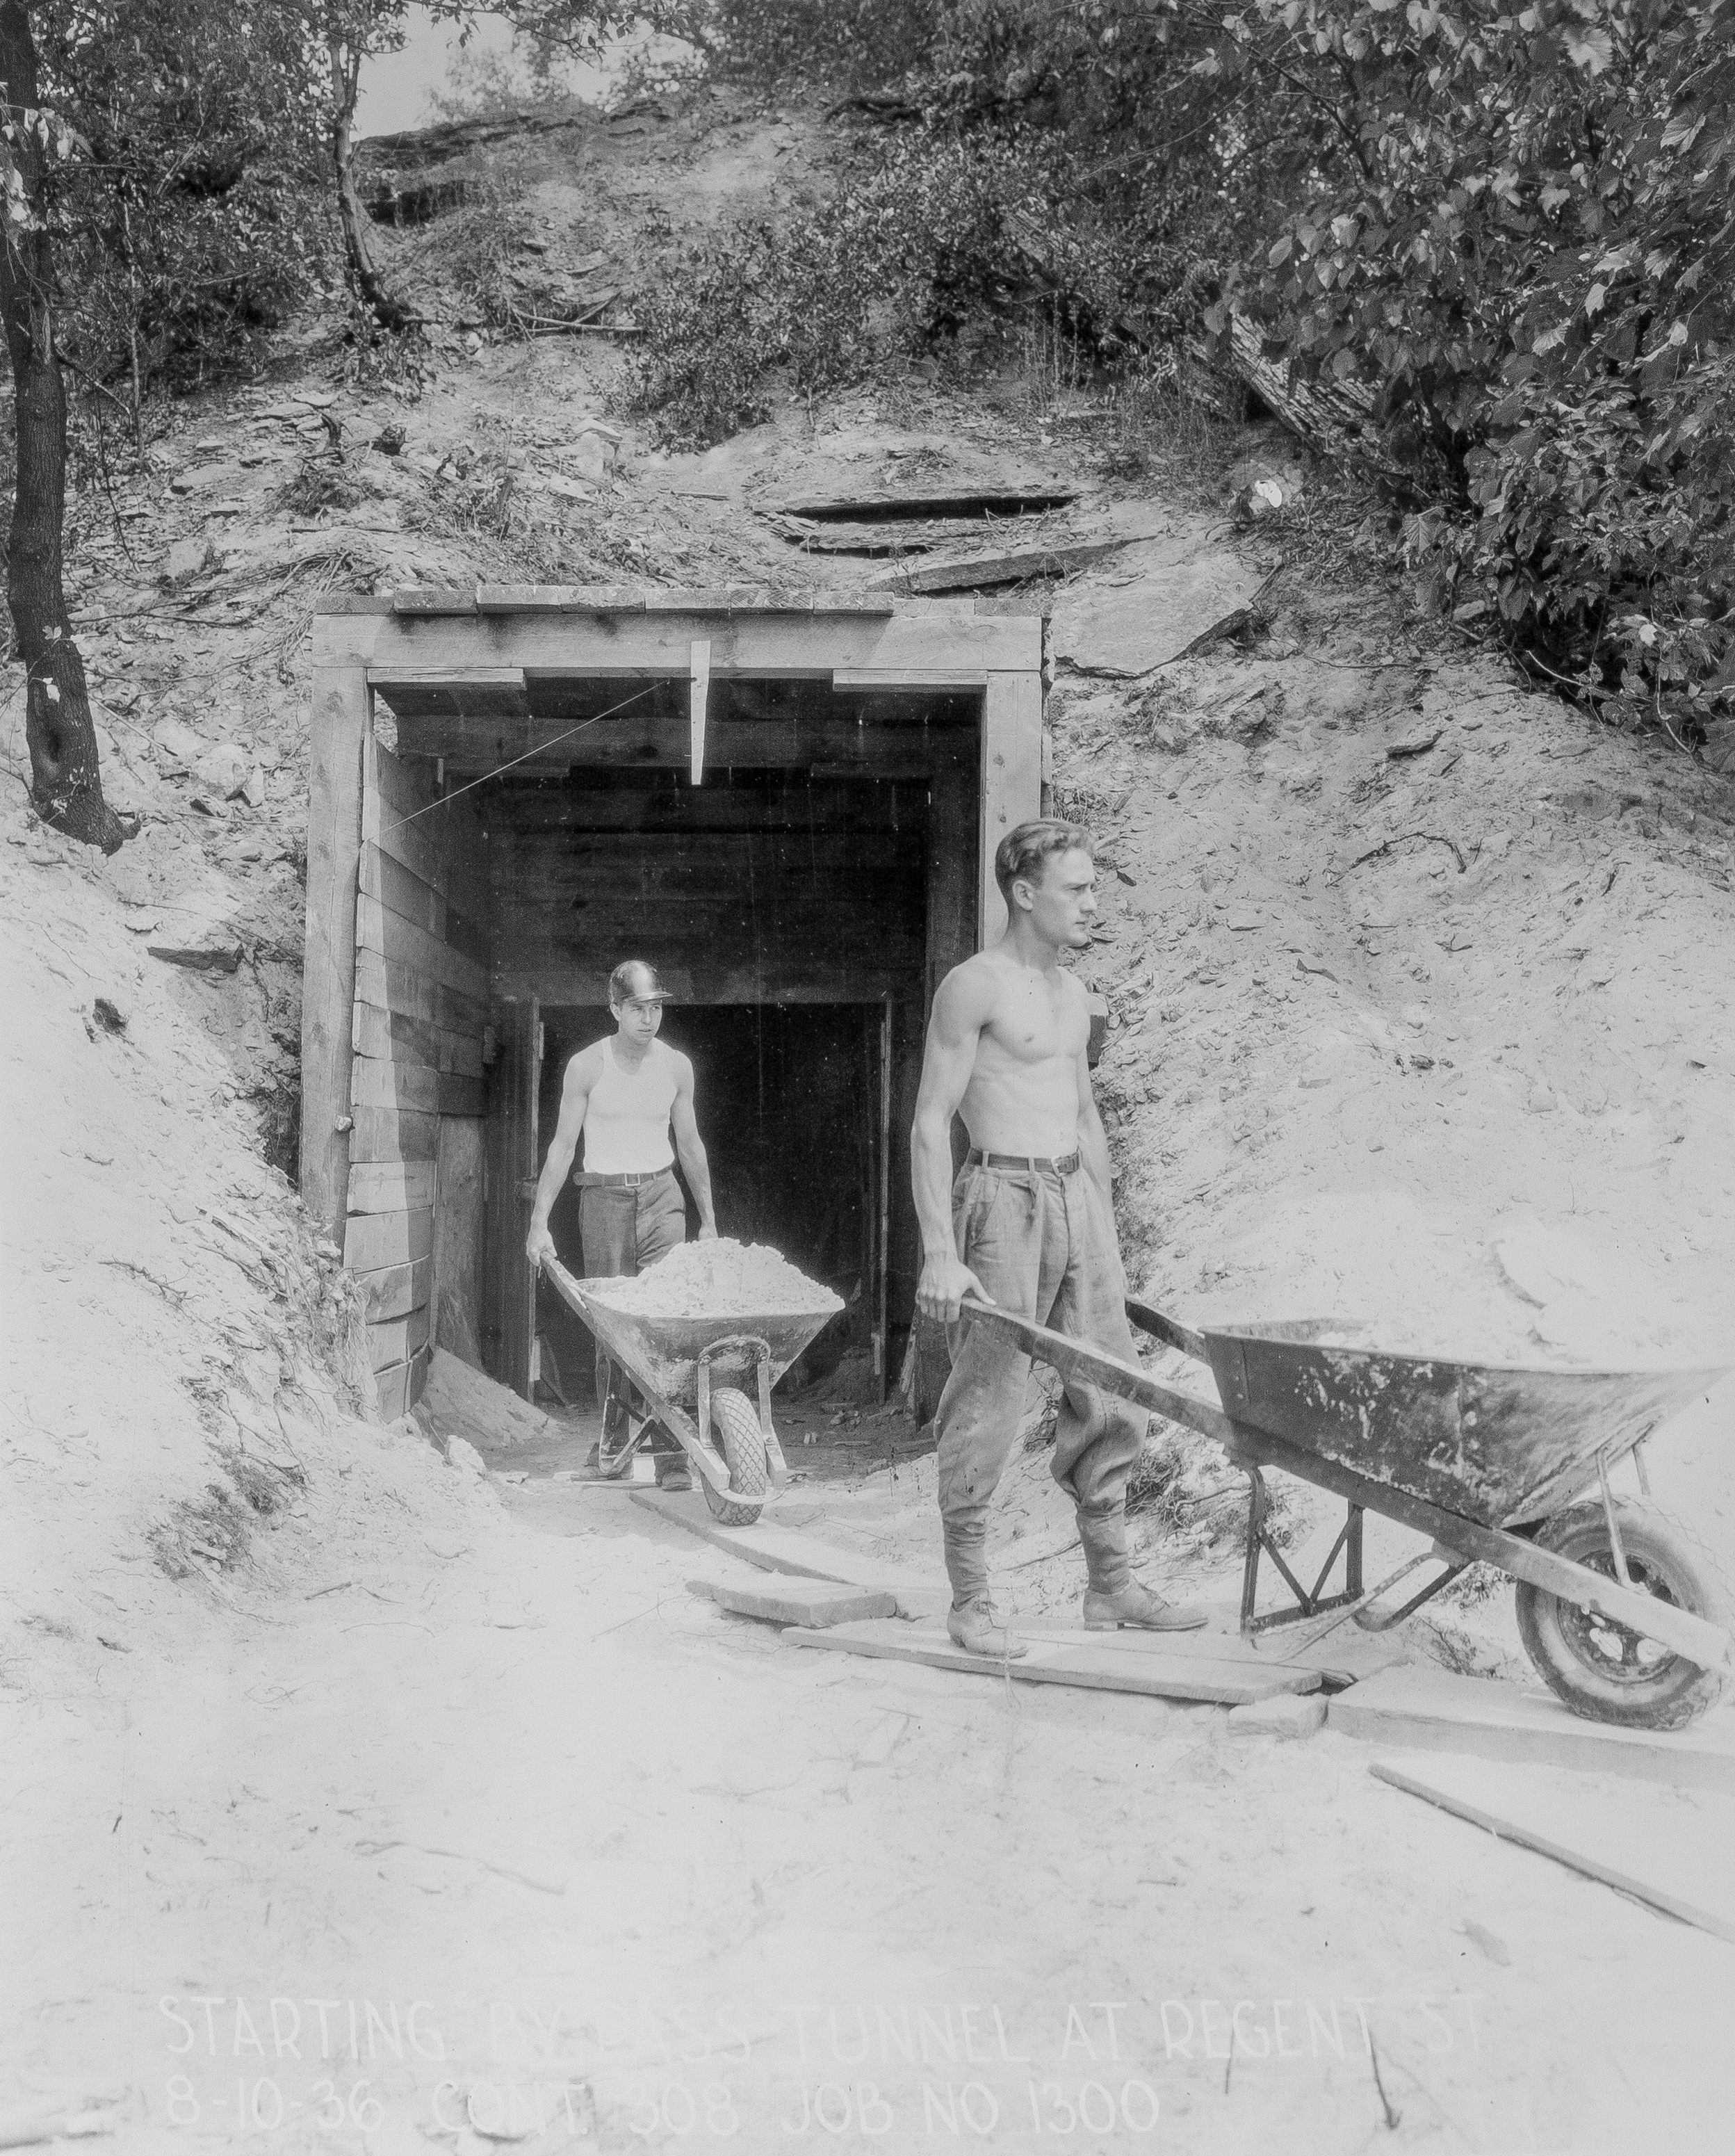 sewer construction, 1930s, minneapolis city archives, public works collection